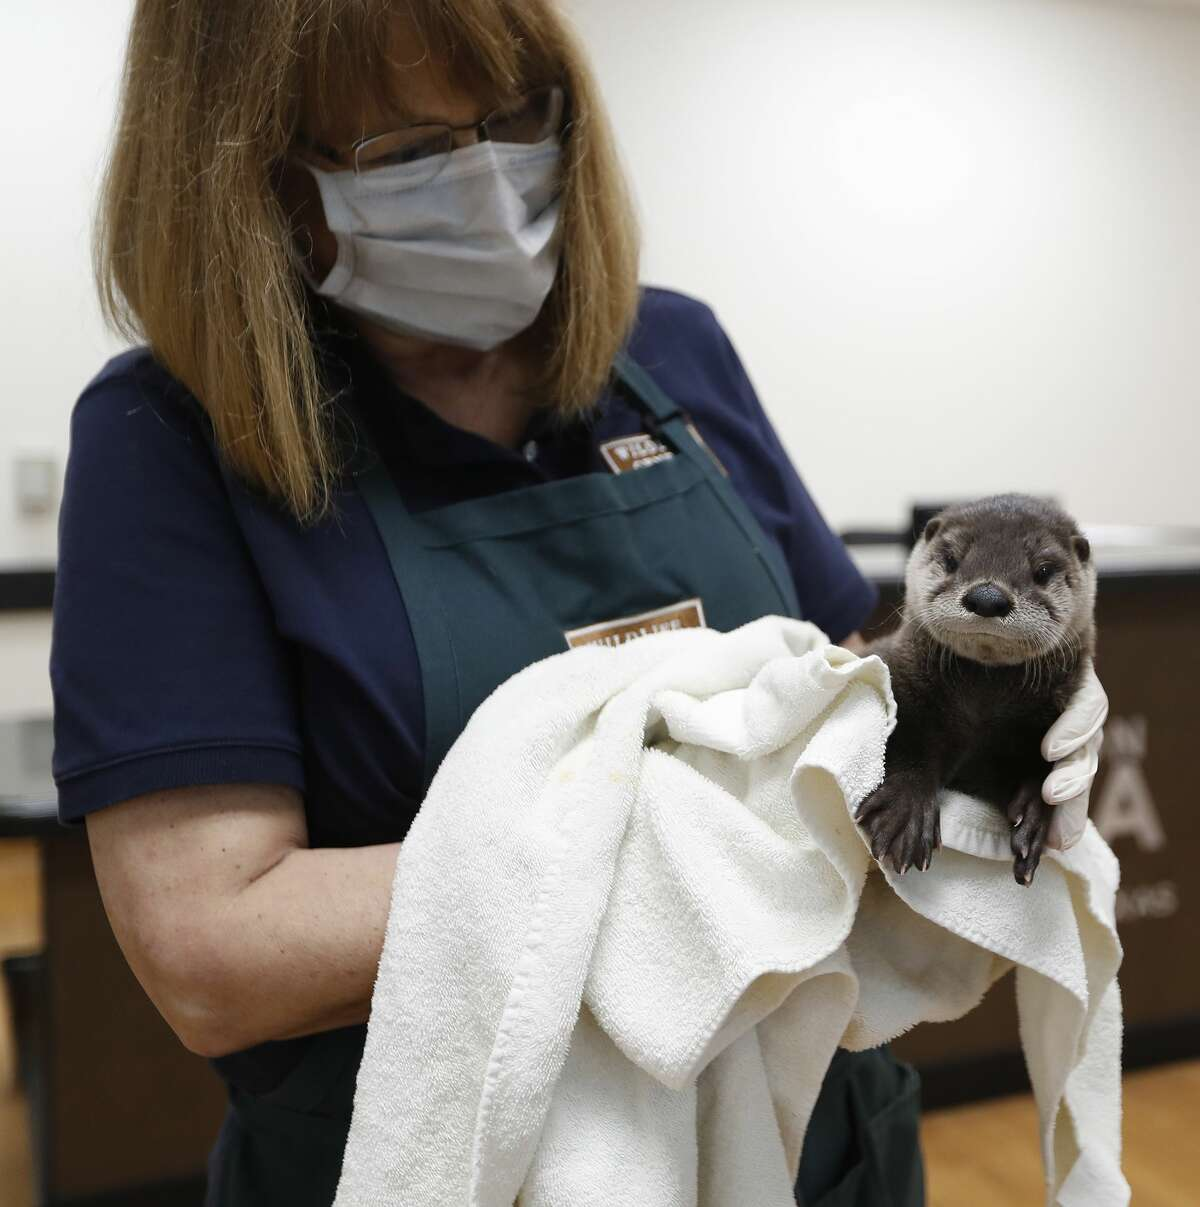 Executive Director Sharon Schmalz at the Houston SPCA's Wildlife Center of Texas, in Houston, Wednesday, April 8, 2020. The Houston SPCA's Wildlife Center remains open and continues to provide lifesaving services during the pandemic and intakes 60-90 orphaned and injured wild animals each day. The higher intake number is mostly attributed to more people staying at home during the Stay Home Work Safe order.